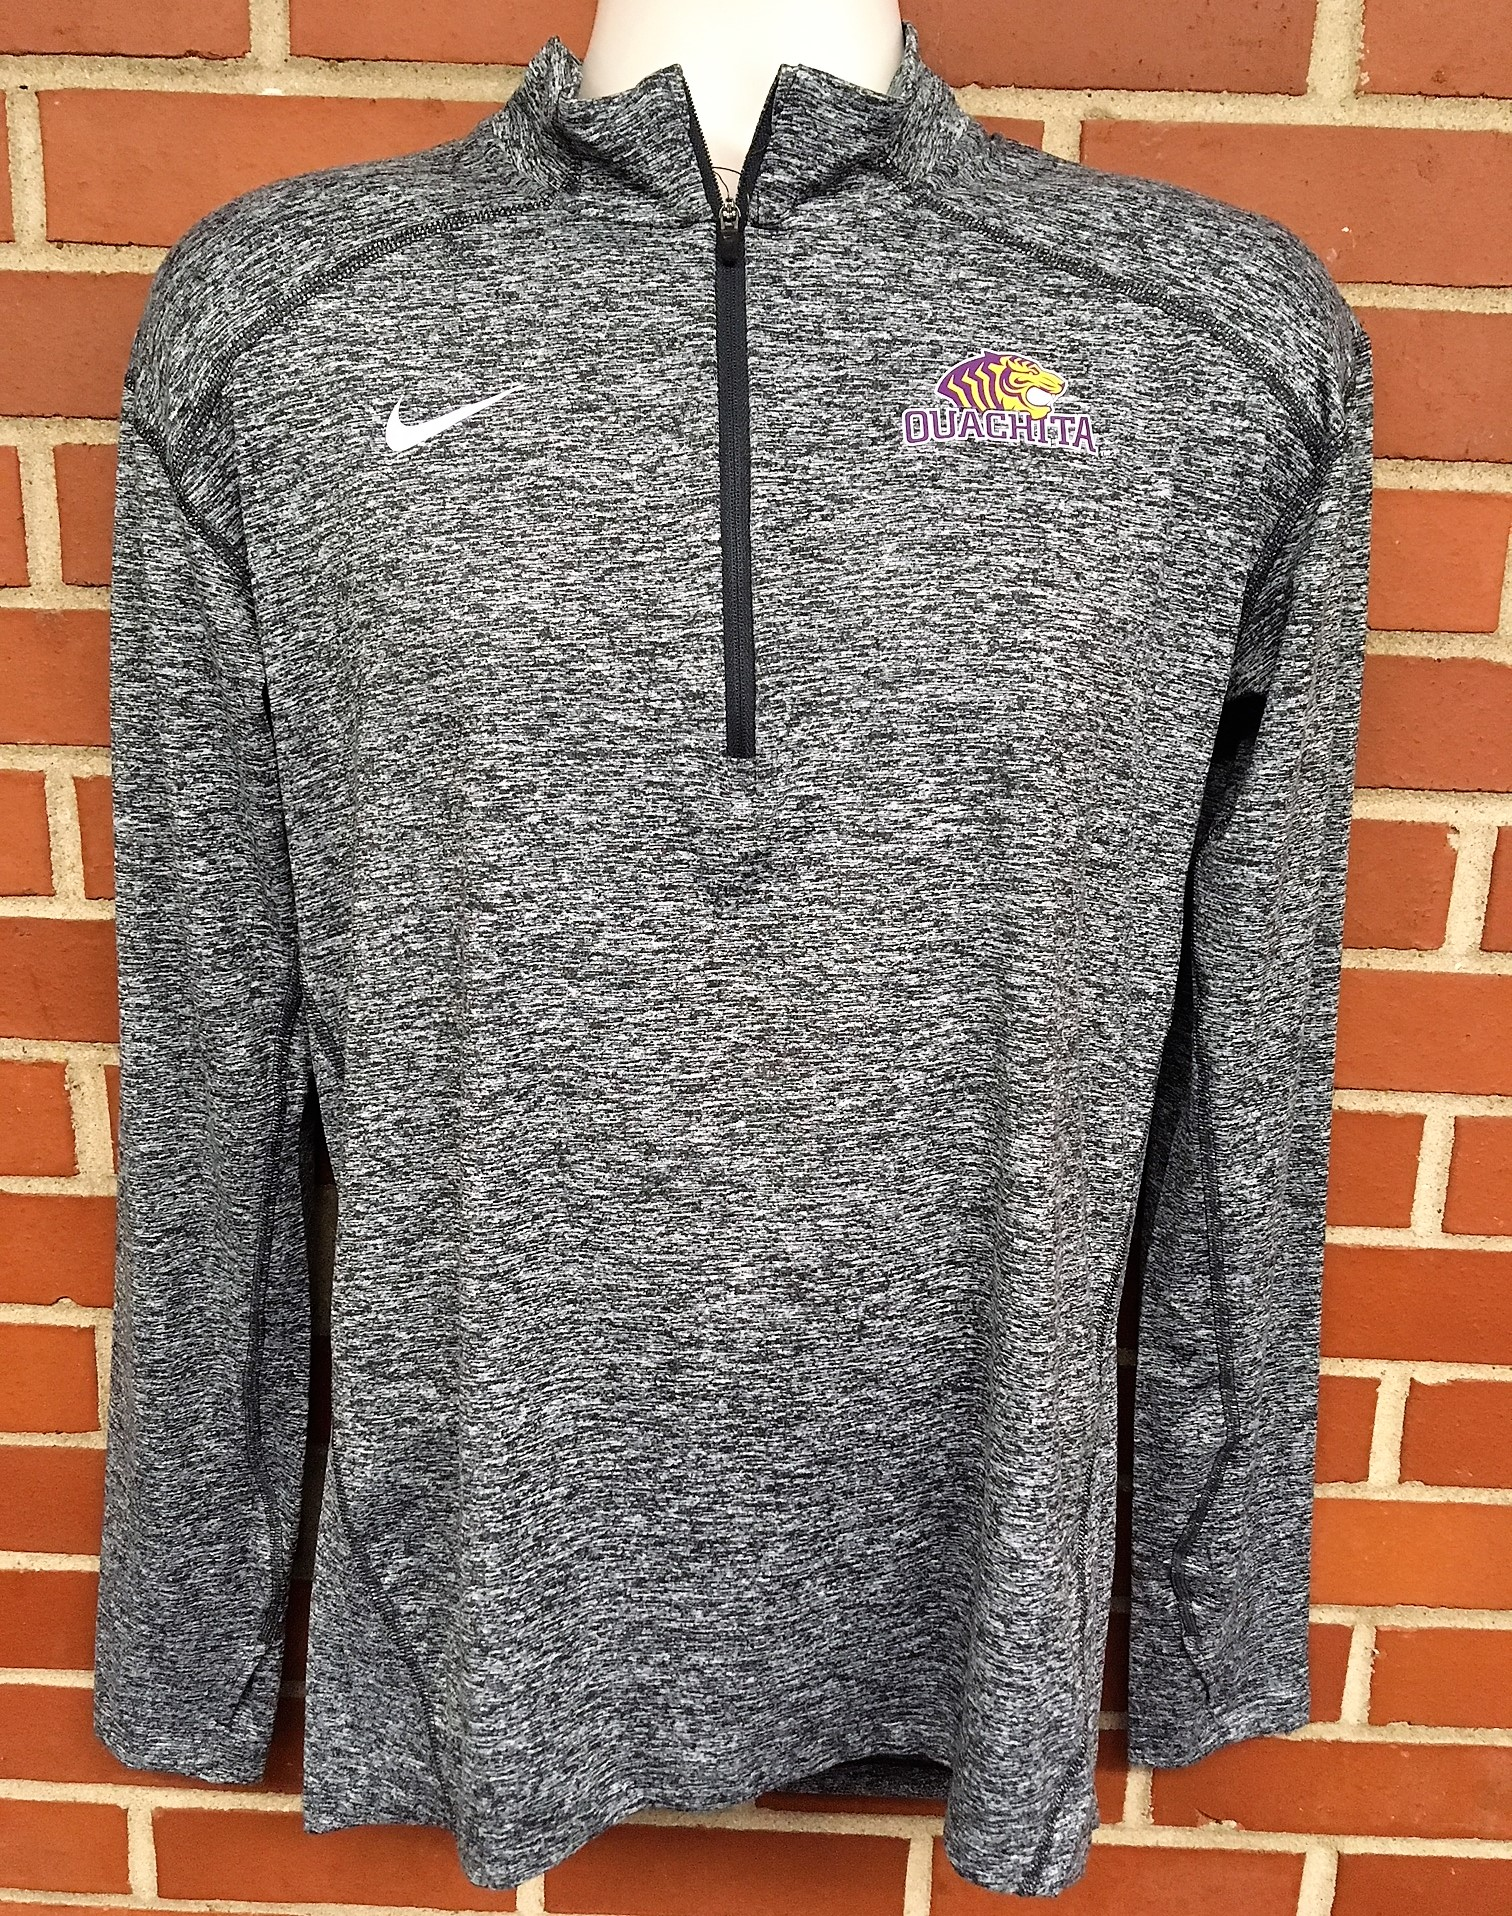 OUACHITA ELEMENT 1/4 ZIP TOP